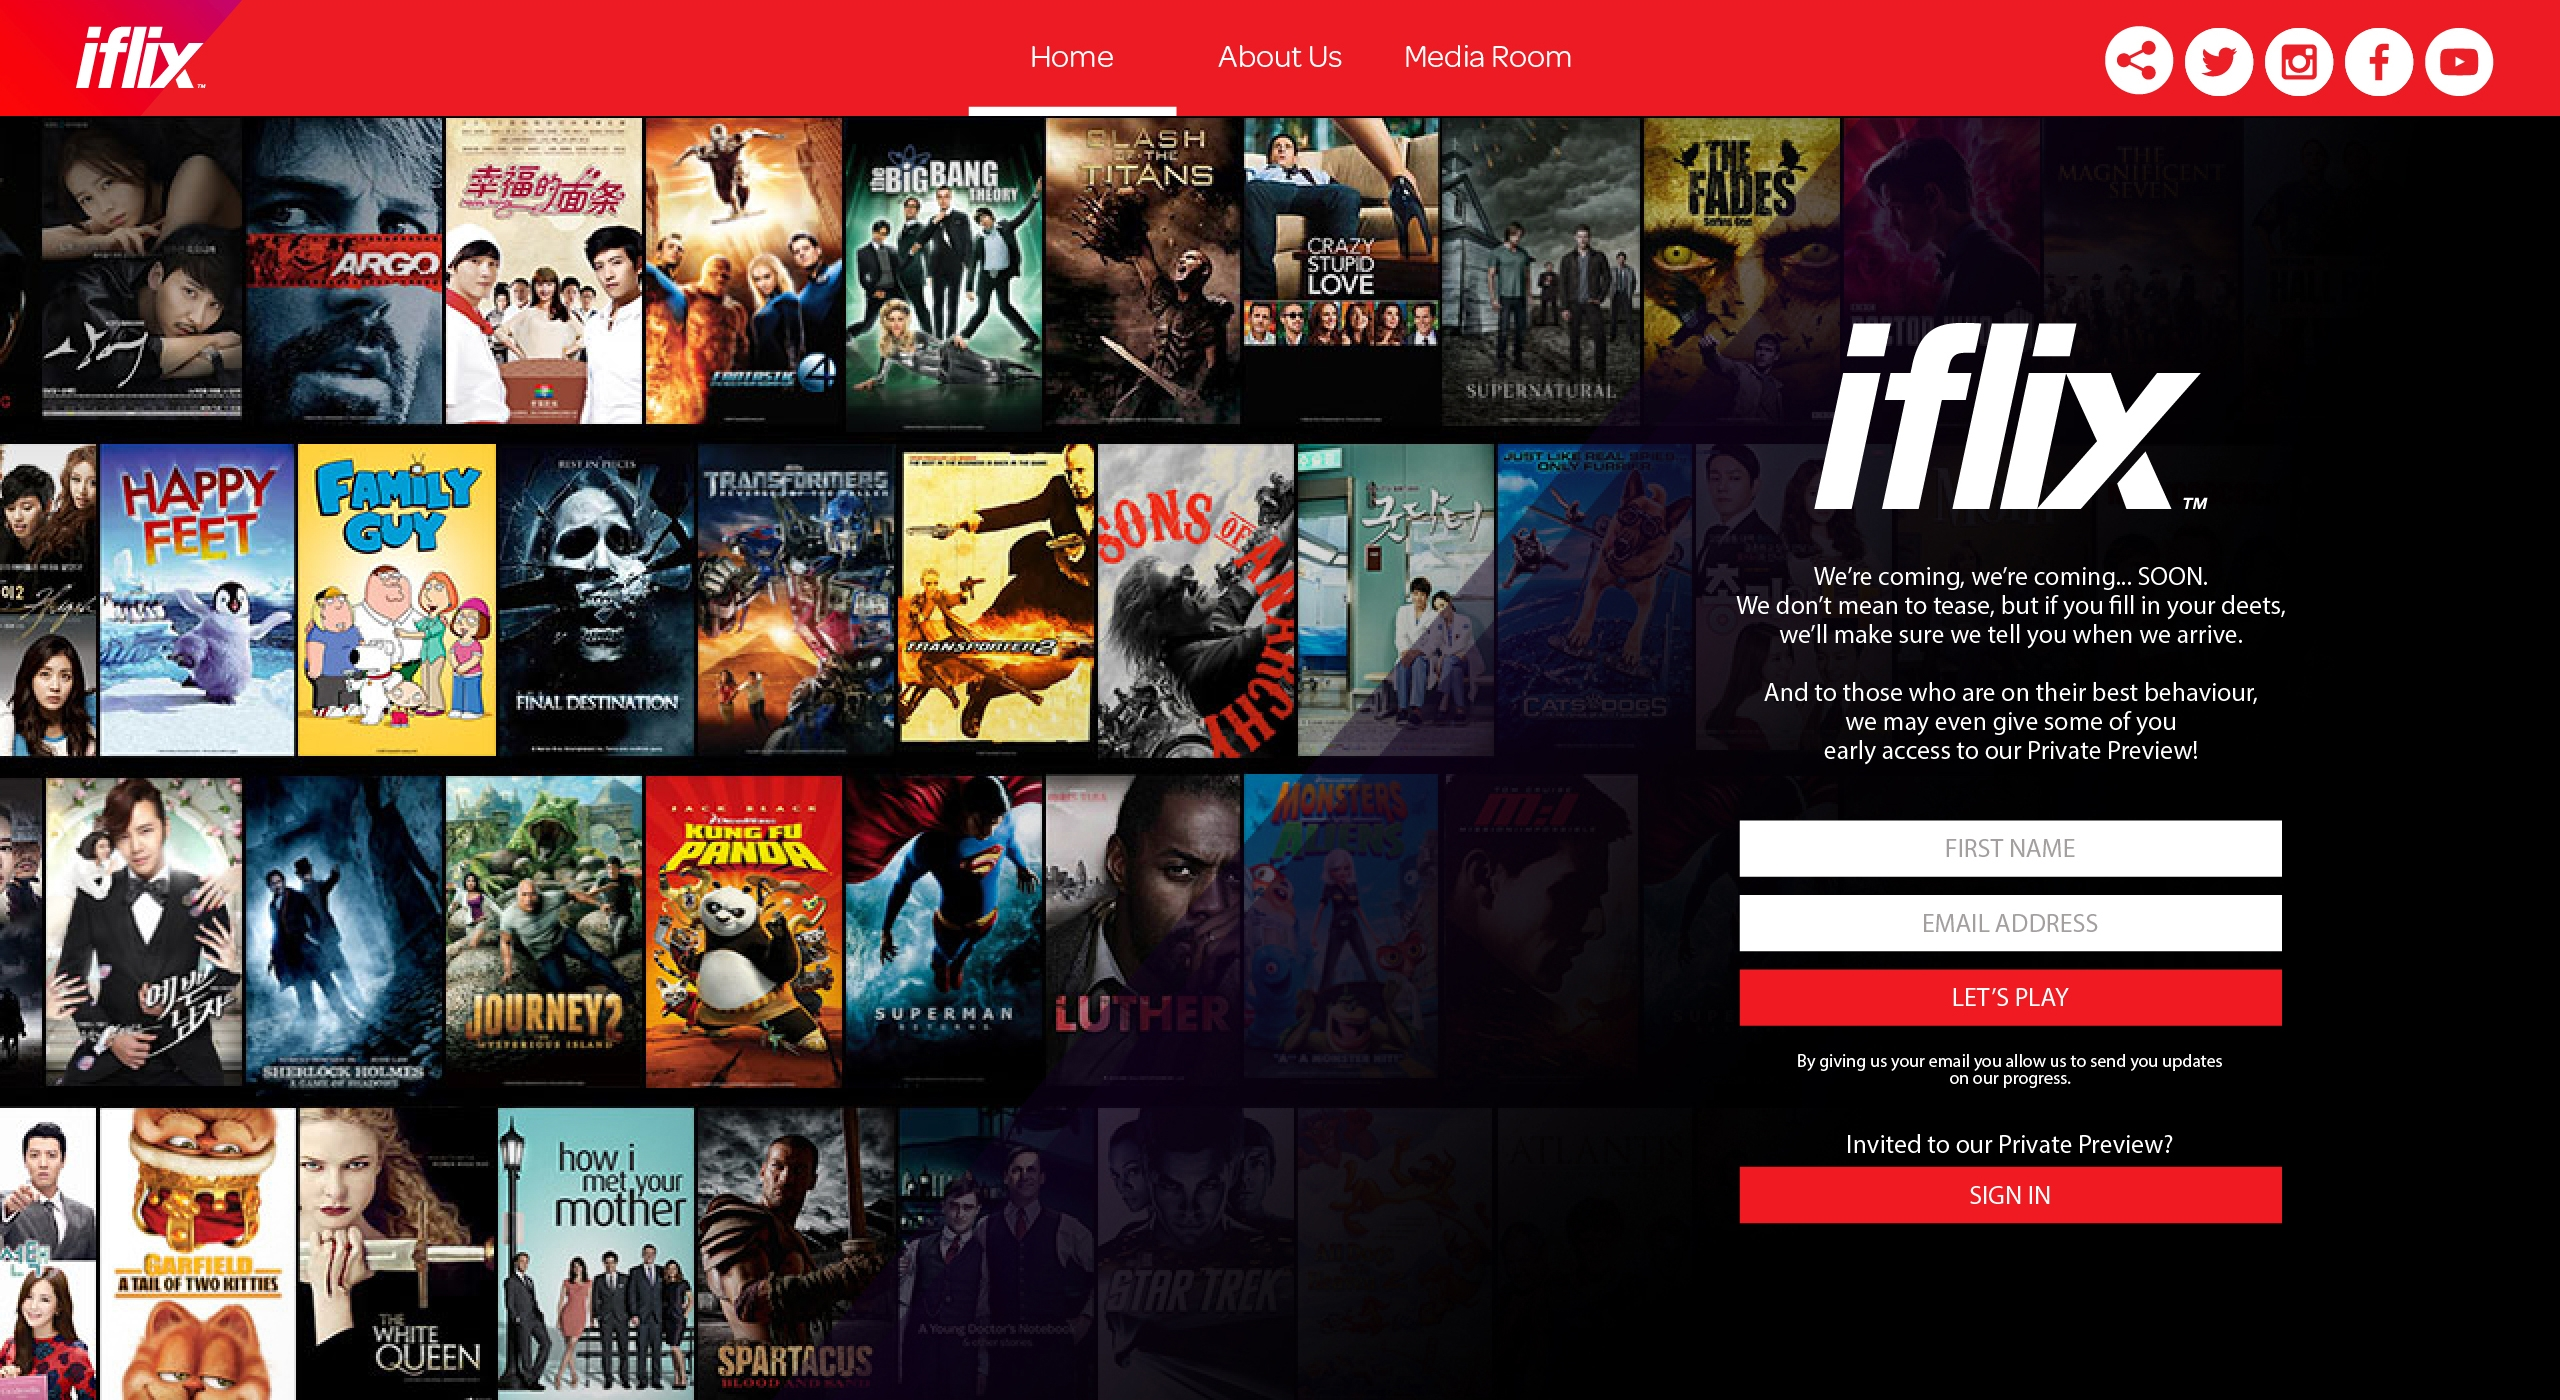 SVoD service Iflix raises Dollars 133 mln to develop own content